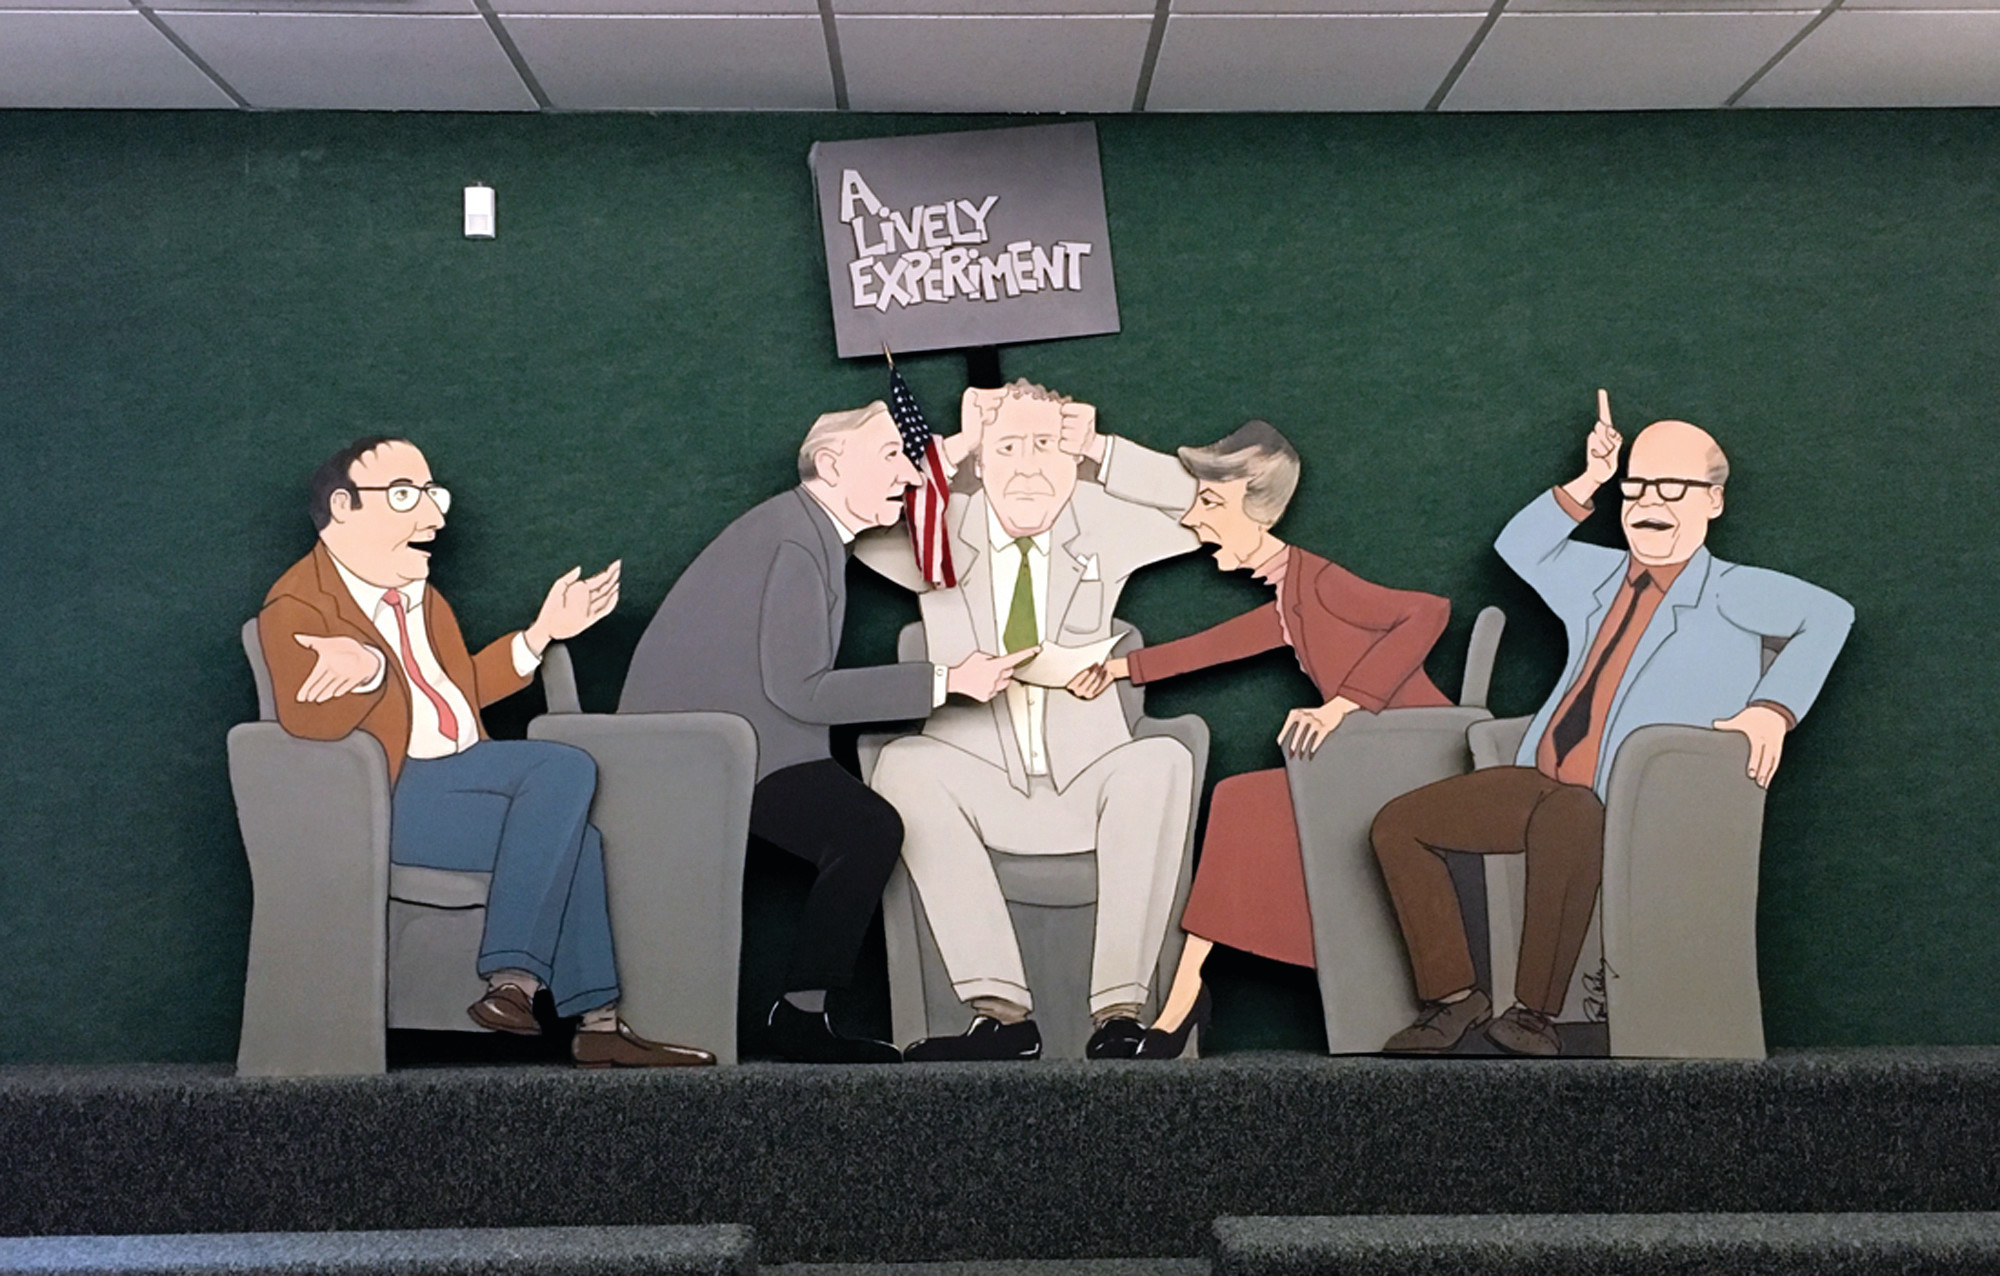 PANEL SKETCH: A caricature of Lively hangs on the wall of the lobby inside WSBE.